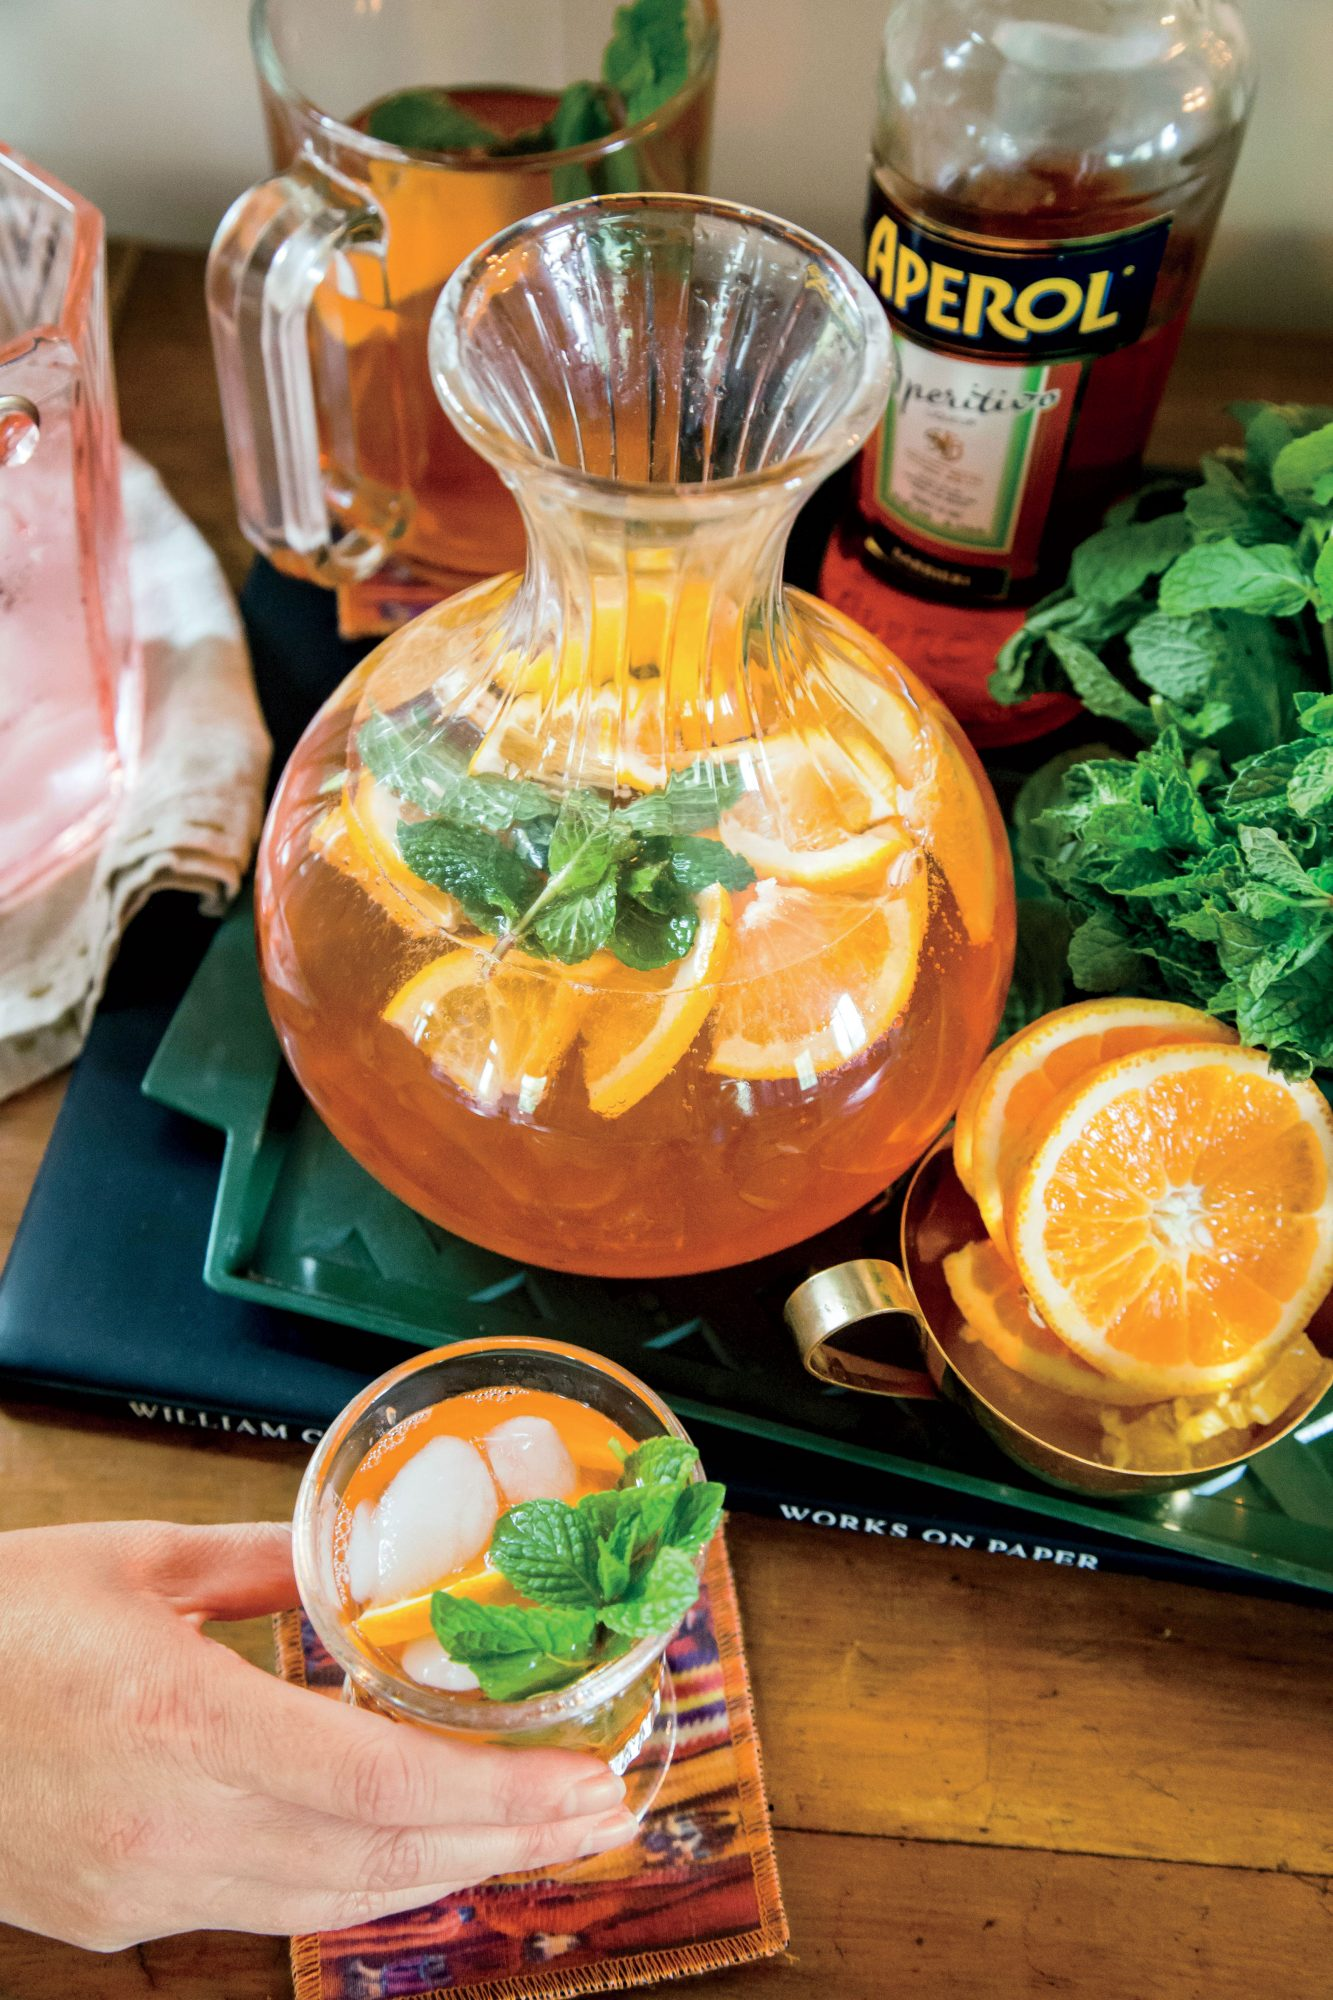 Aperol and Blood Orange-Mint Spritz